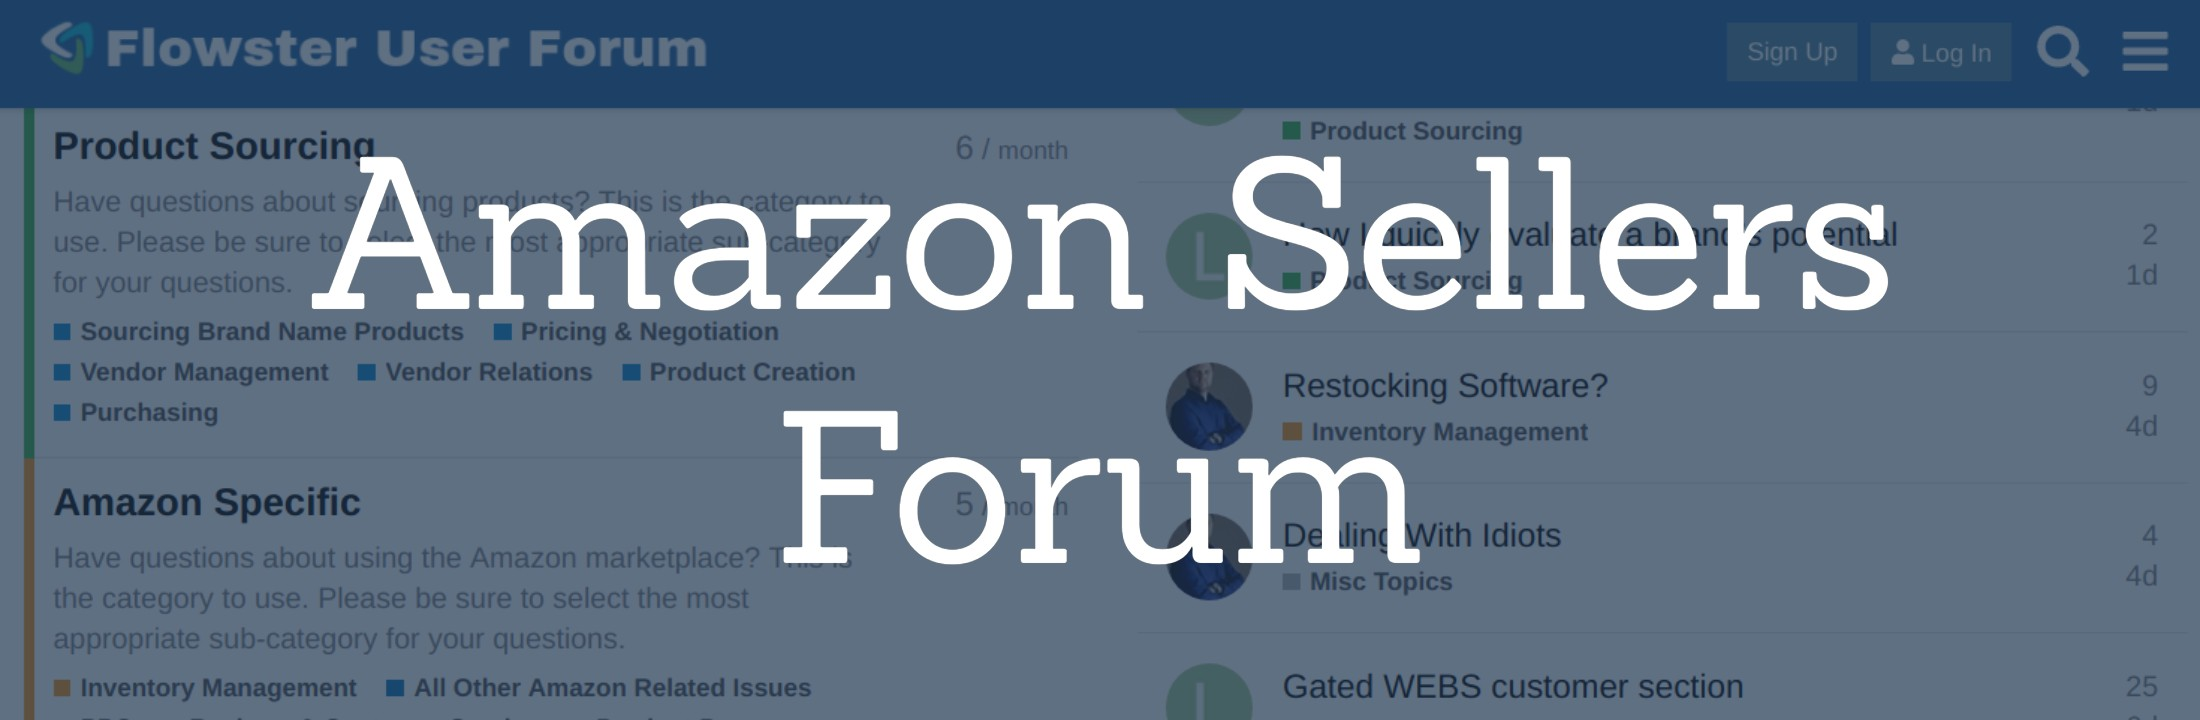 Amazon Sellers Forum